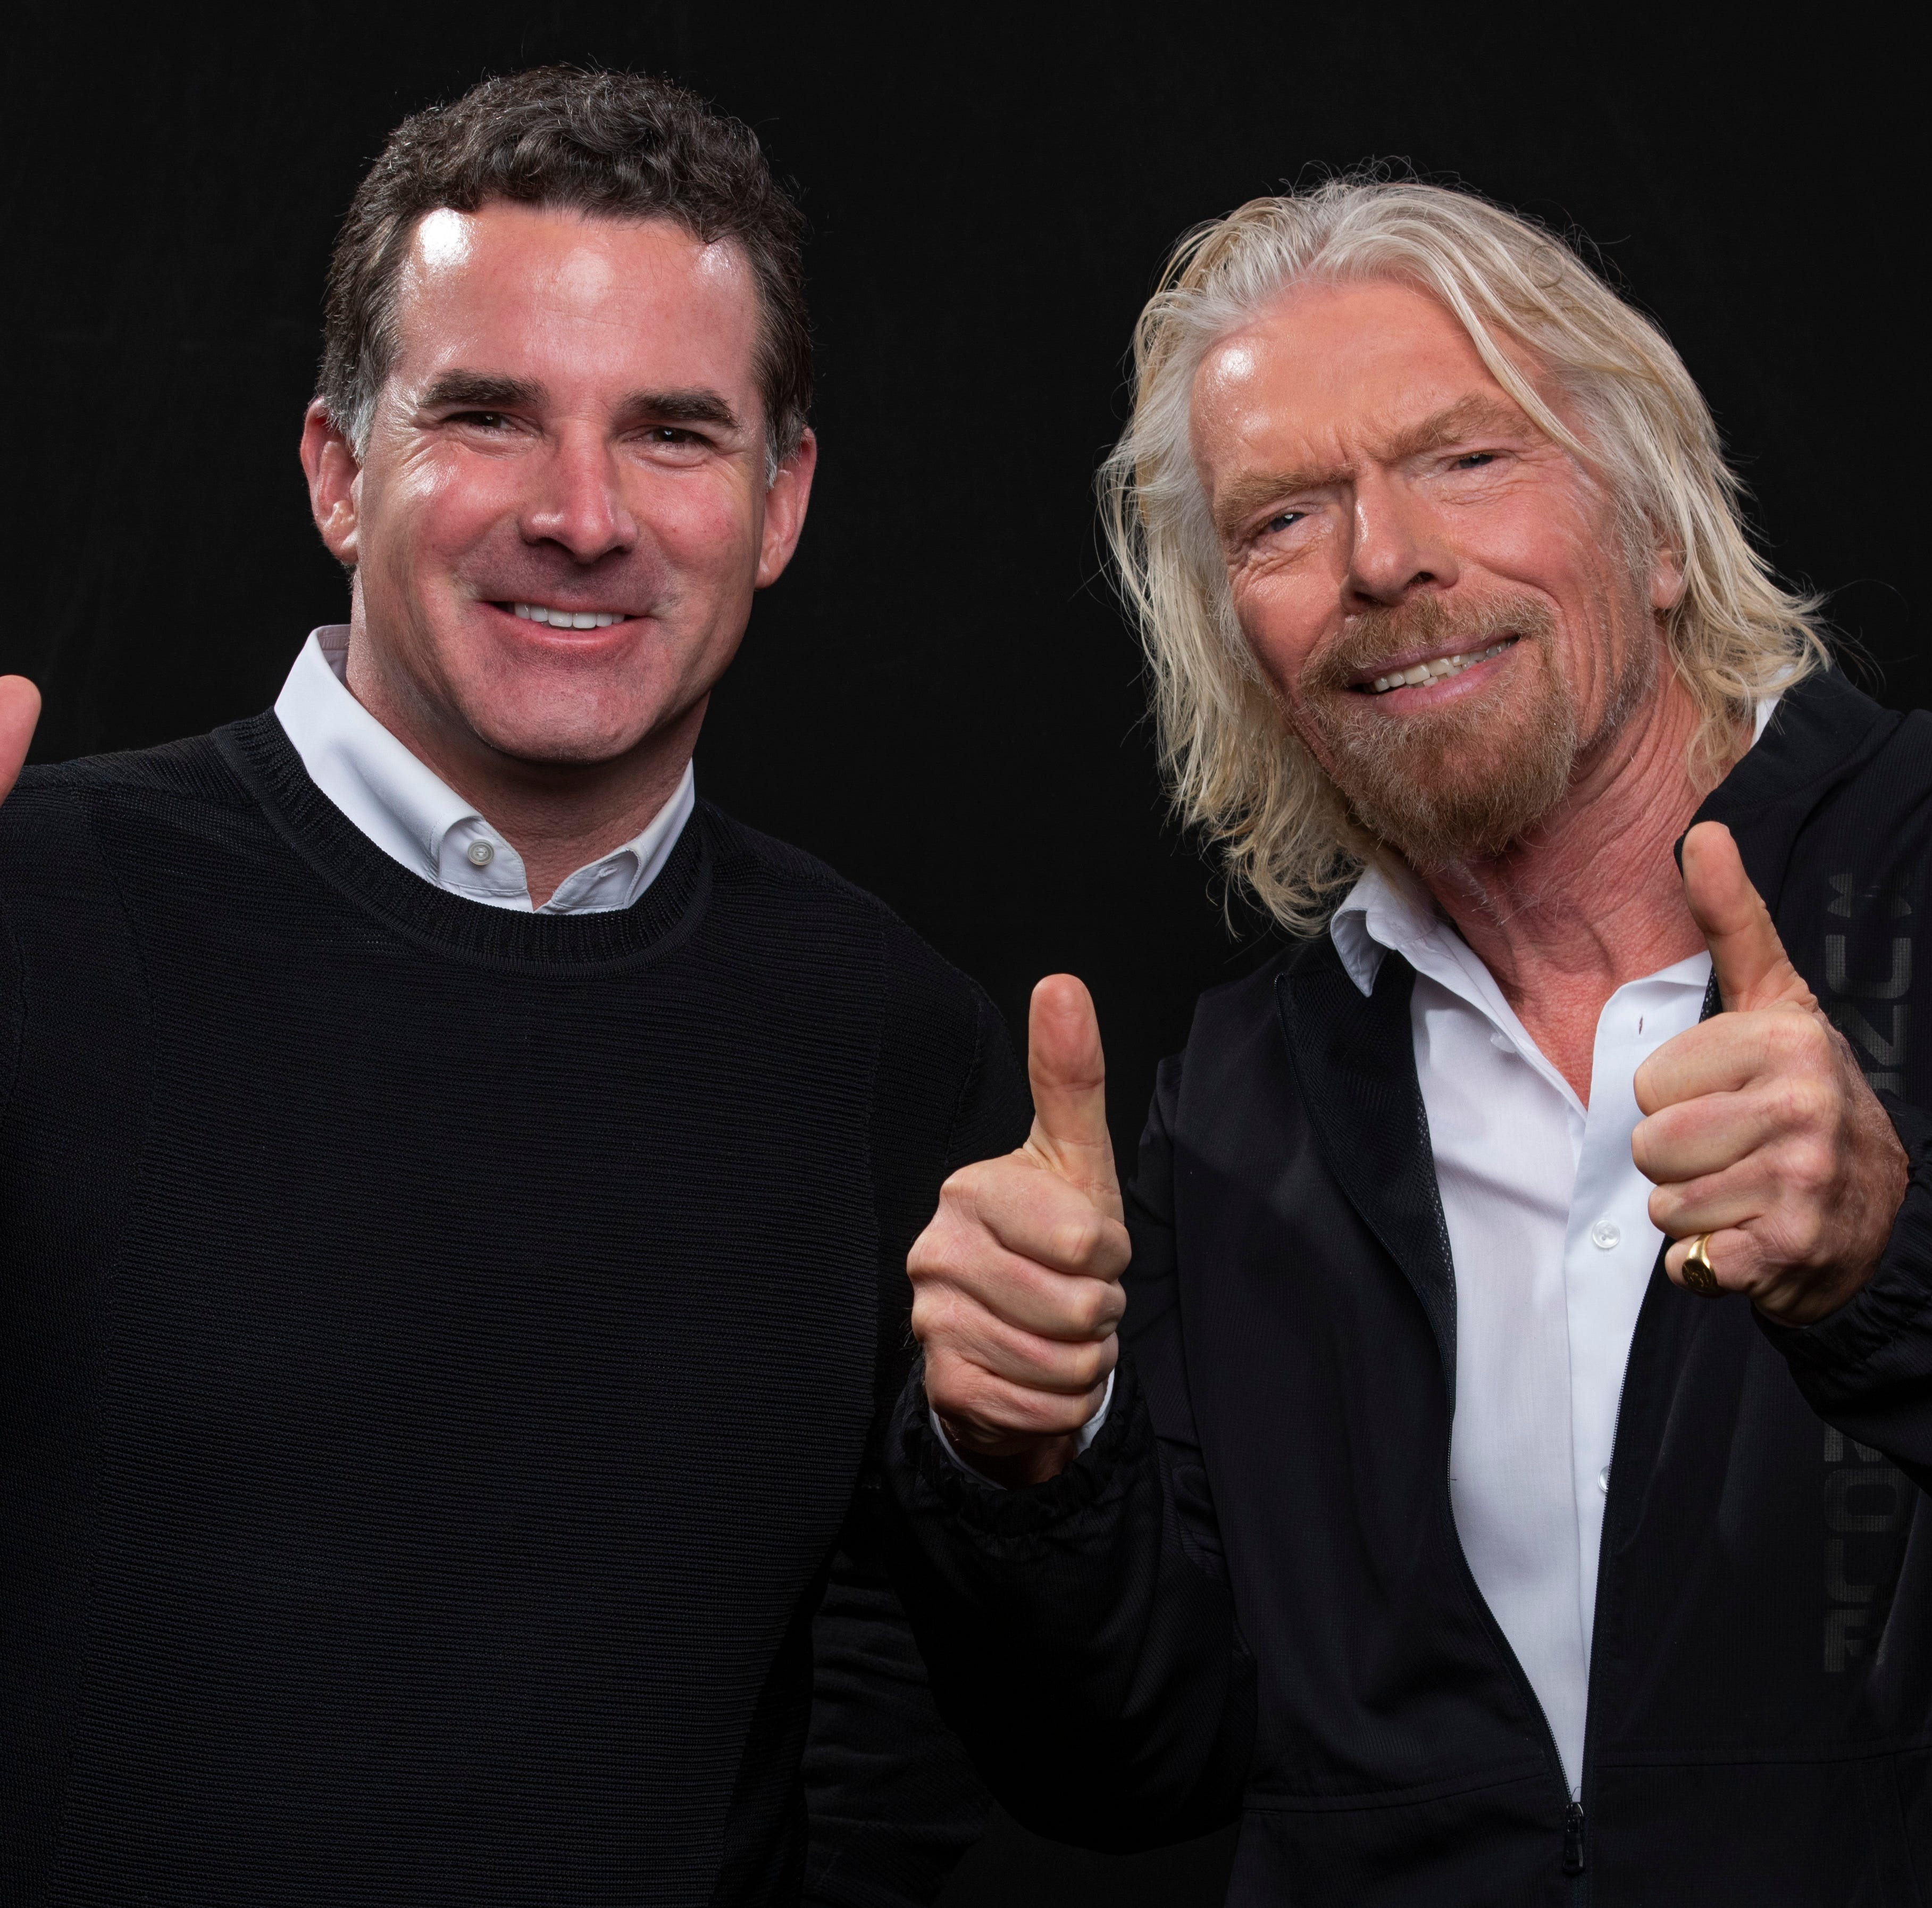 Have $250K? Fly to space in an Under Armour spacesuit on Richard Branson's Virgin Galactic